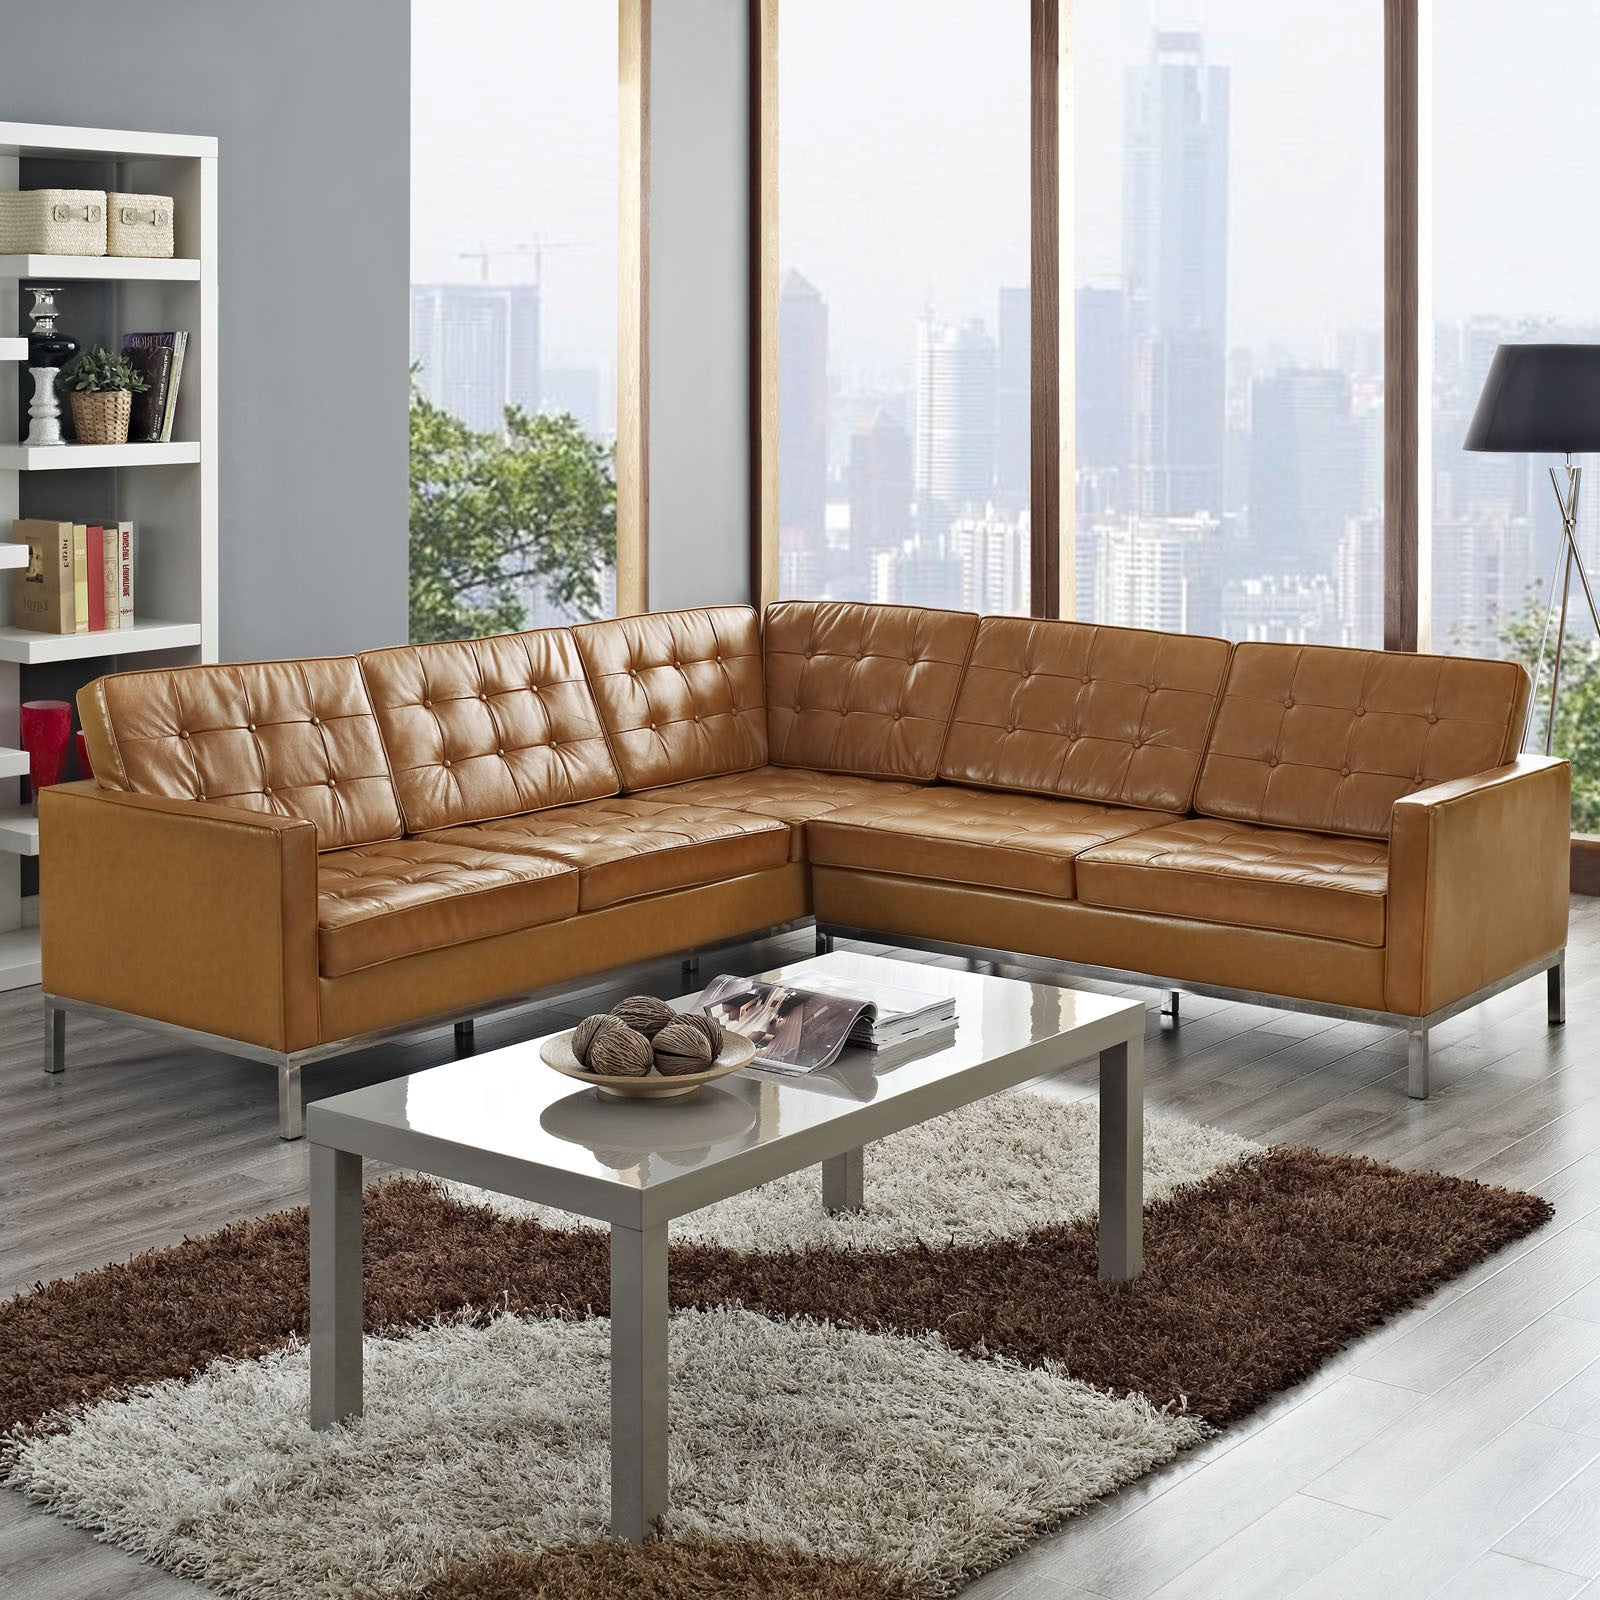 Lyte L-Shaped Leather Sectional Sofa Tan - Froy.com